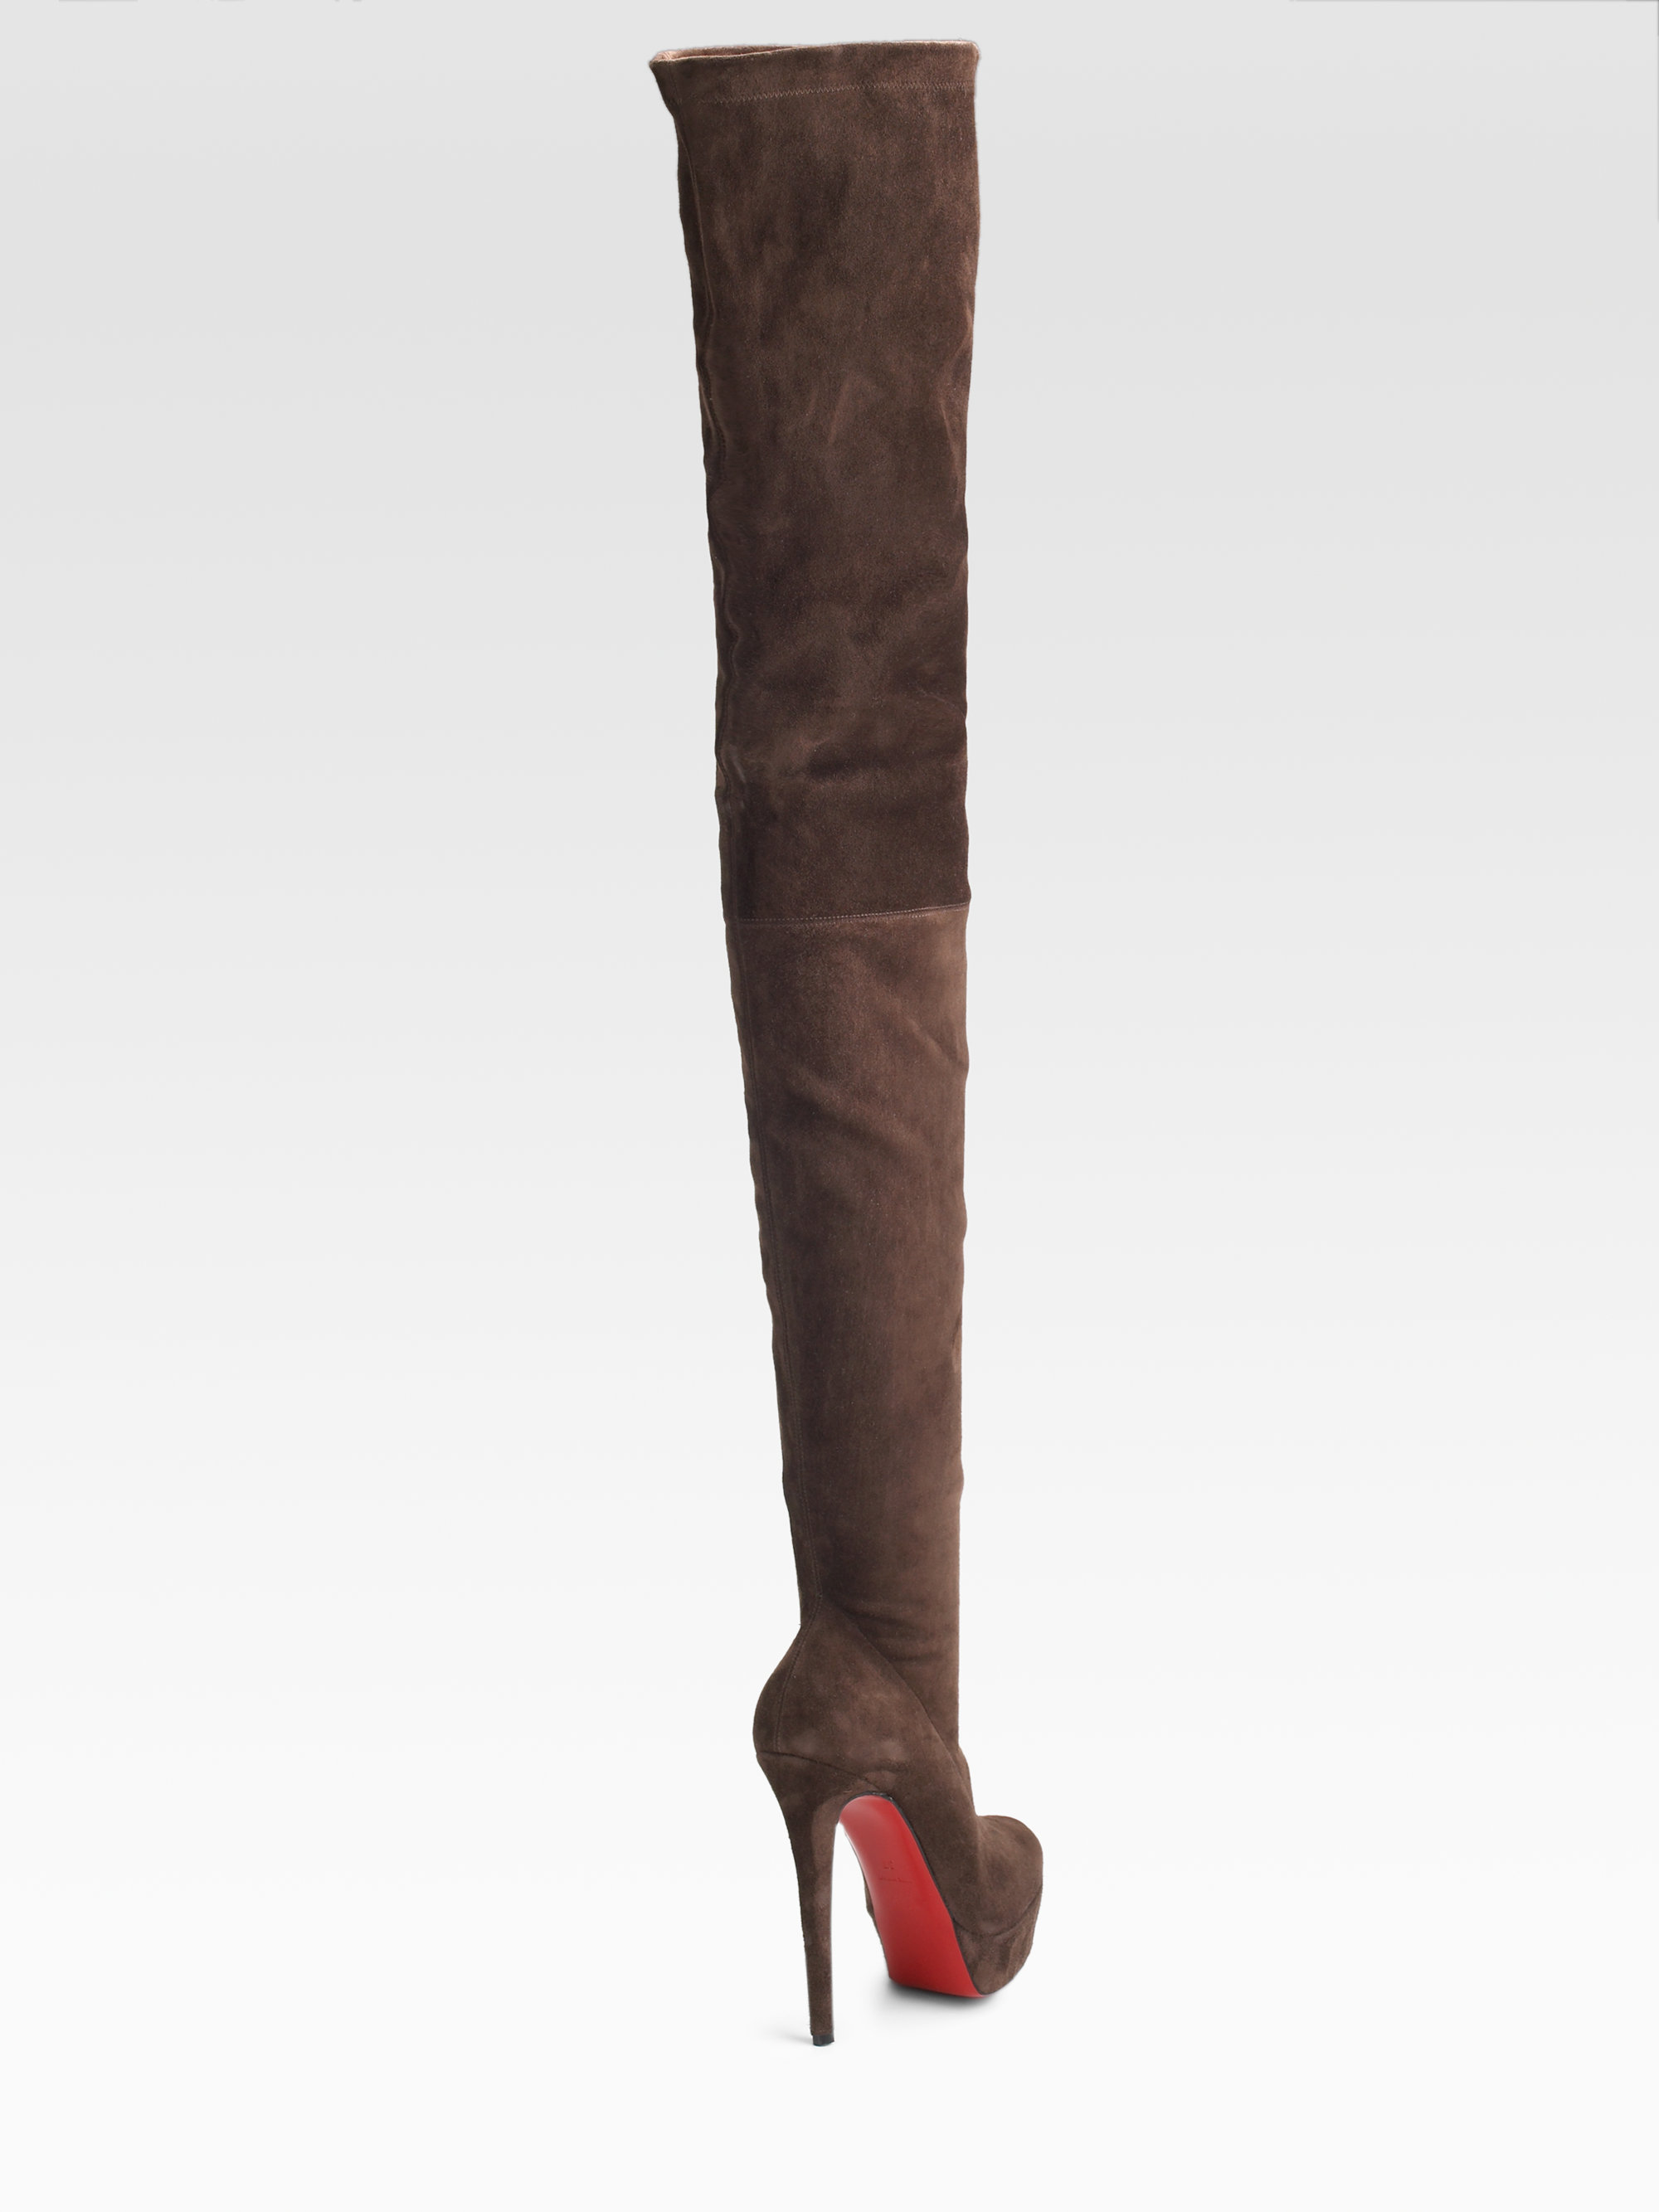 46d5bf0107ea Lyst - Christian Louboutin Gazolina Suede Over-the-knee Boots in Brown